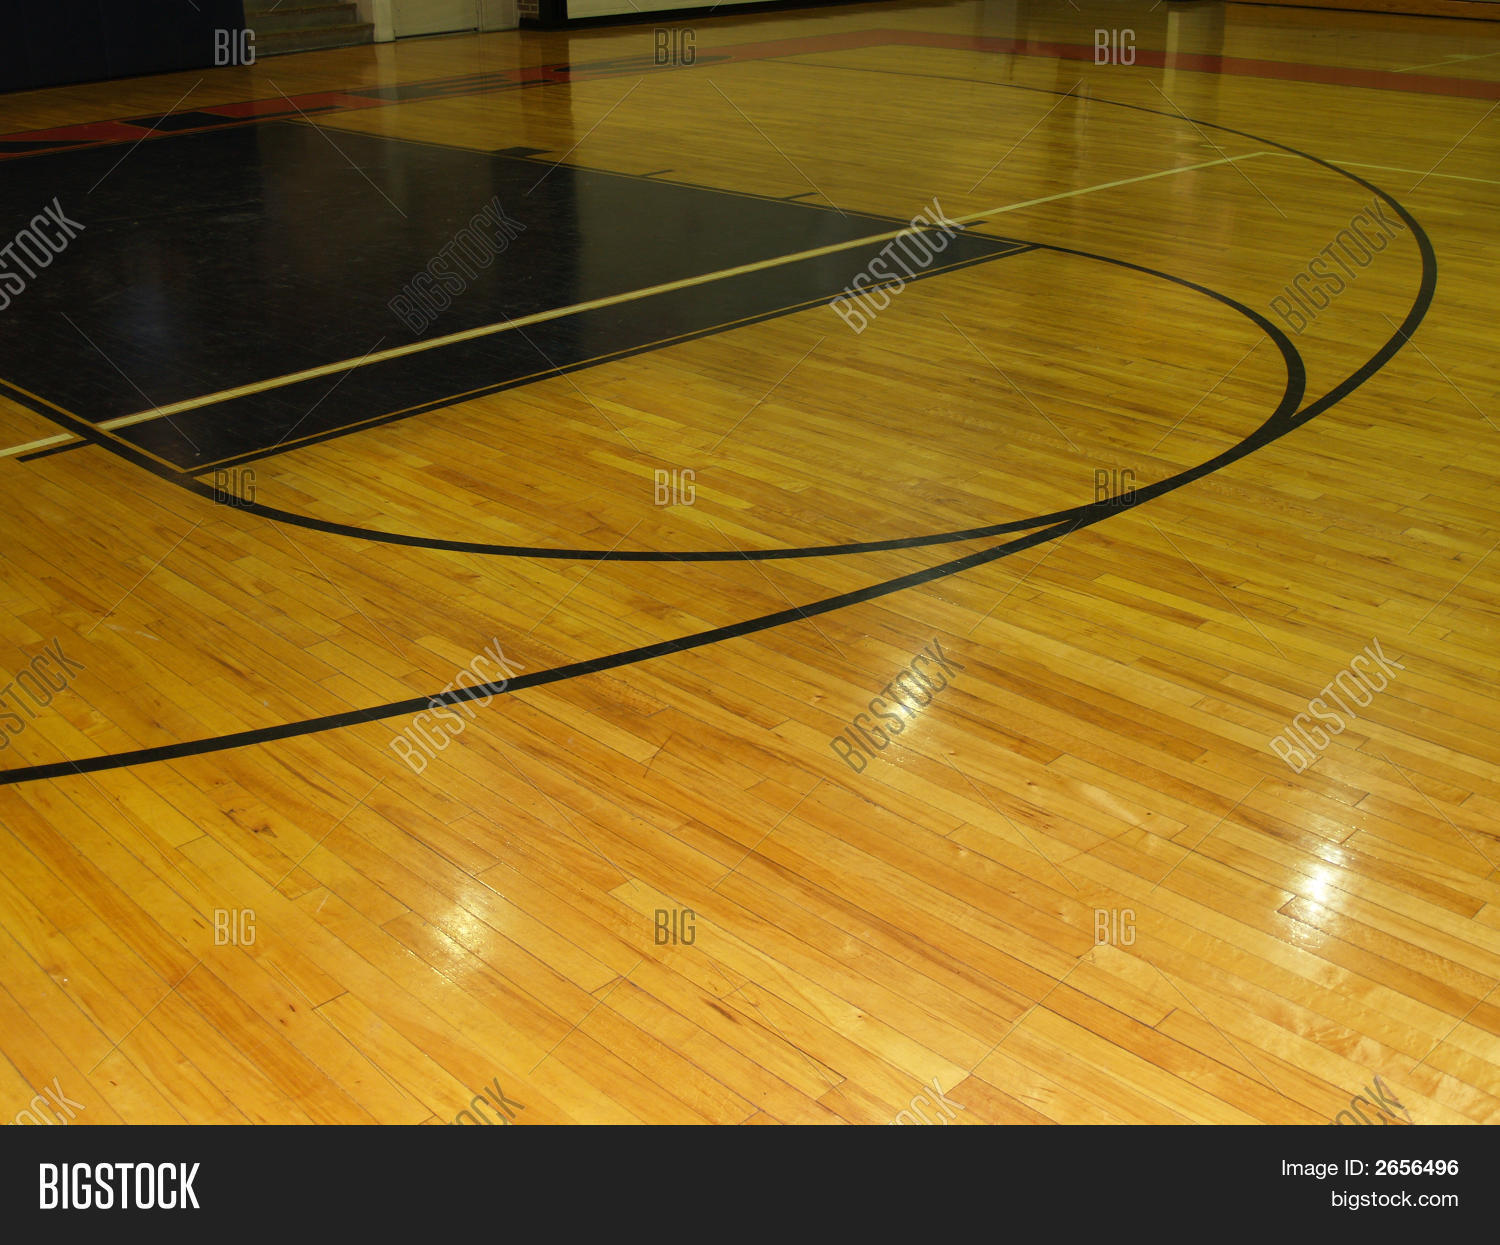 Wood Floor On An Indoor Basketball Court - Basketball Court Wood Floors €� Gurus Floor